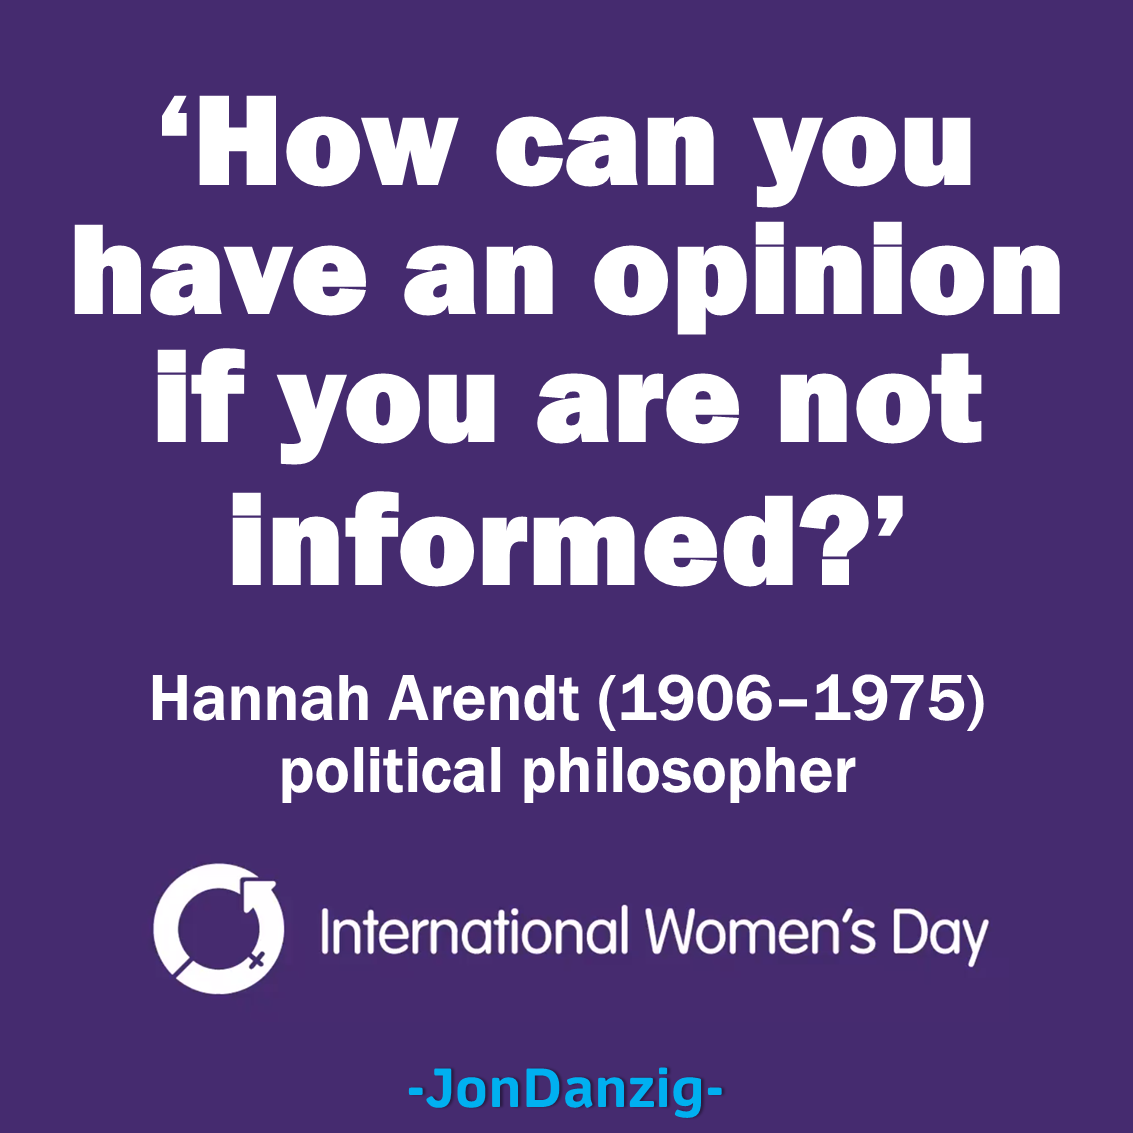 On International Women's Day, remember the words of Hannah Arendt